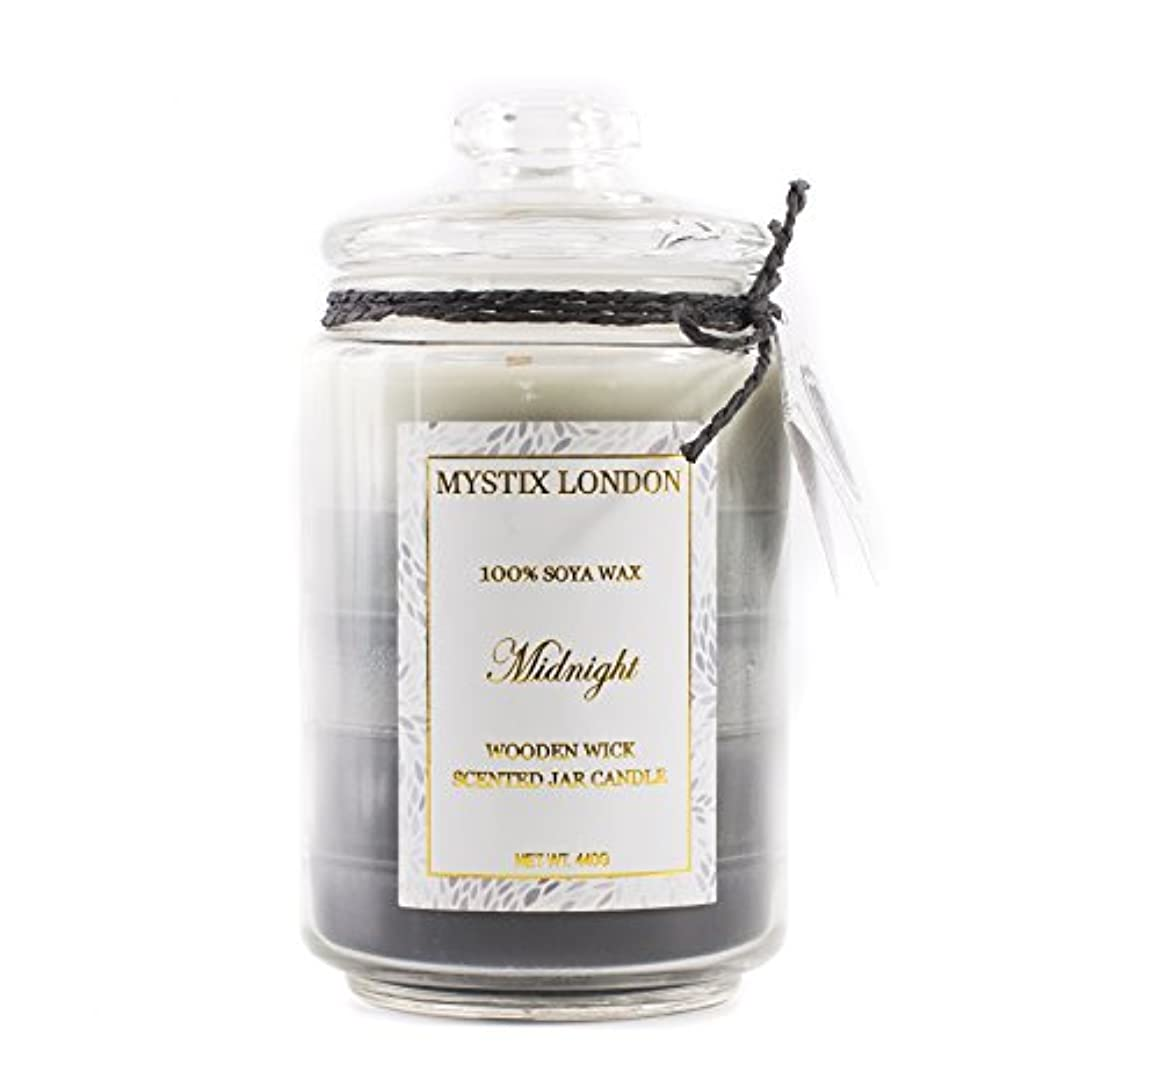 行進アーティストわずかなMystix London Midnight Wooden Wick Scented Jar Candle 440g